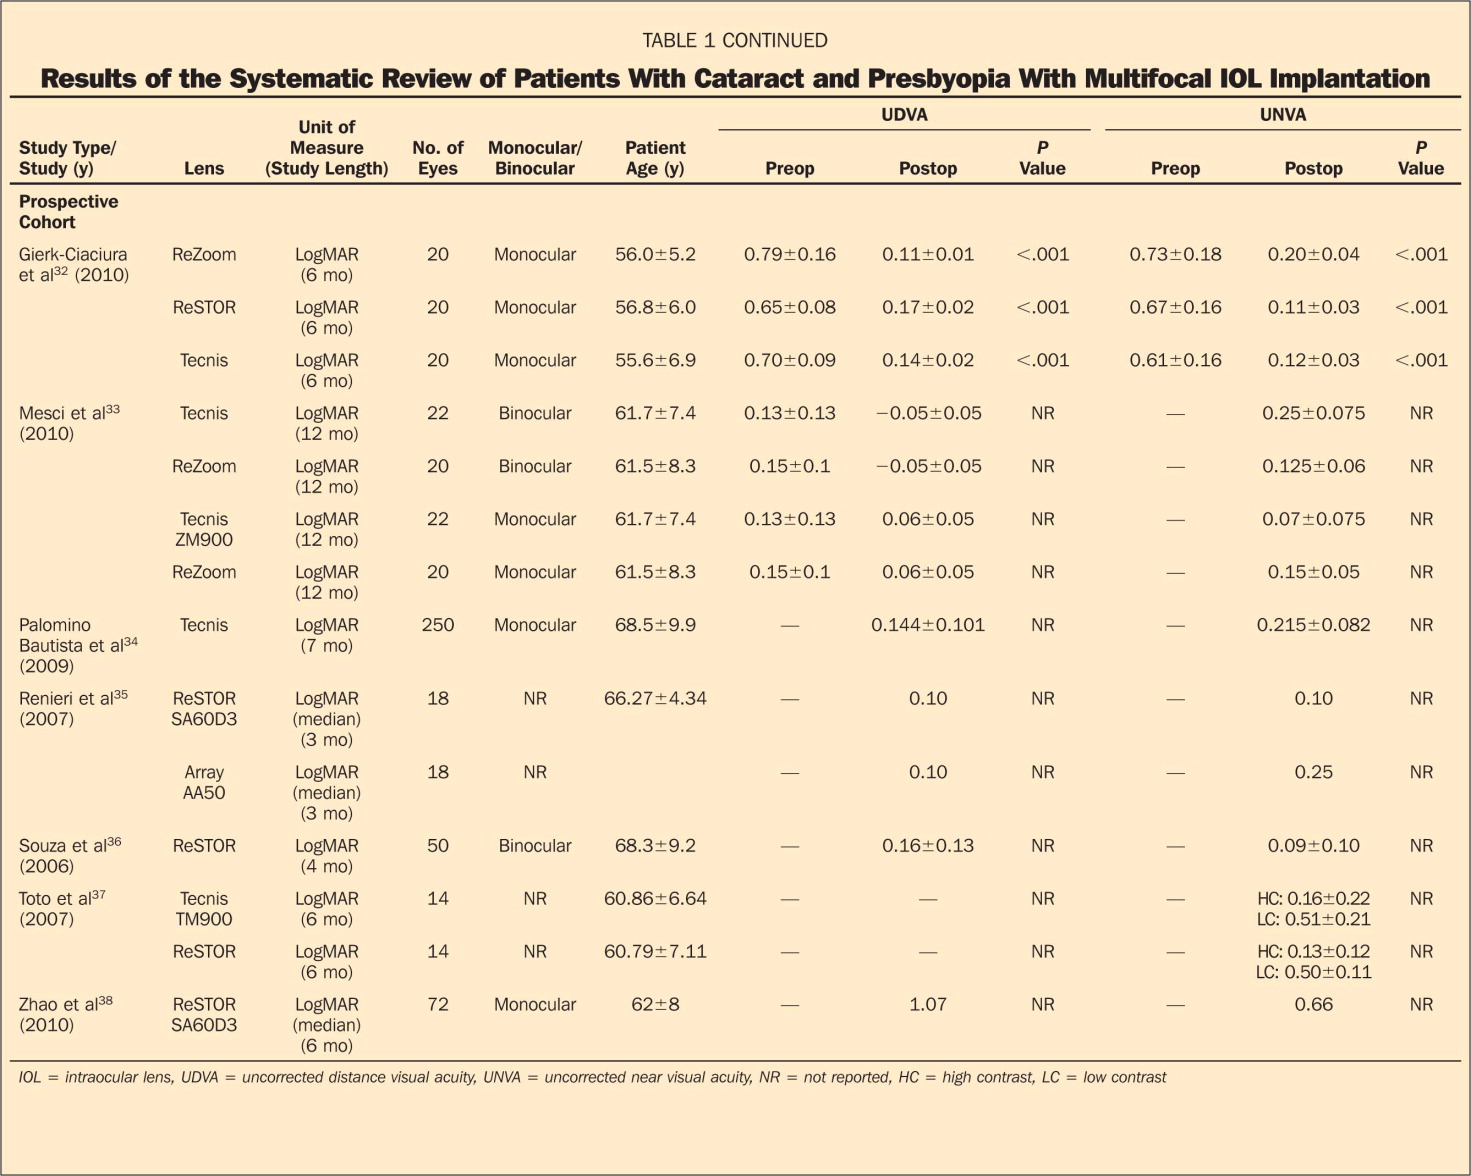 Results of the Systematic Review of Patients With Cataract and Presbyopia With Multifocal IOL Implantation